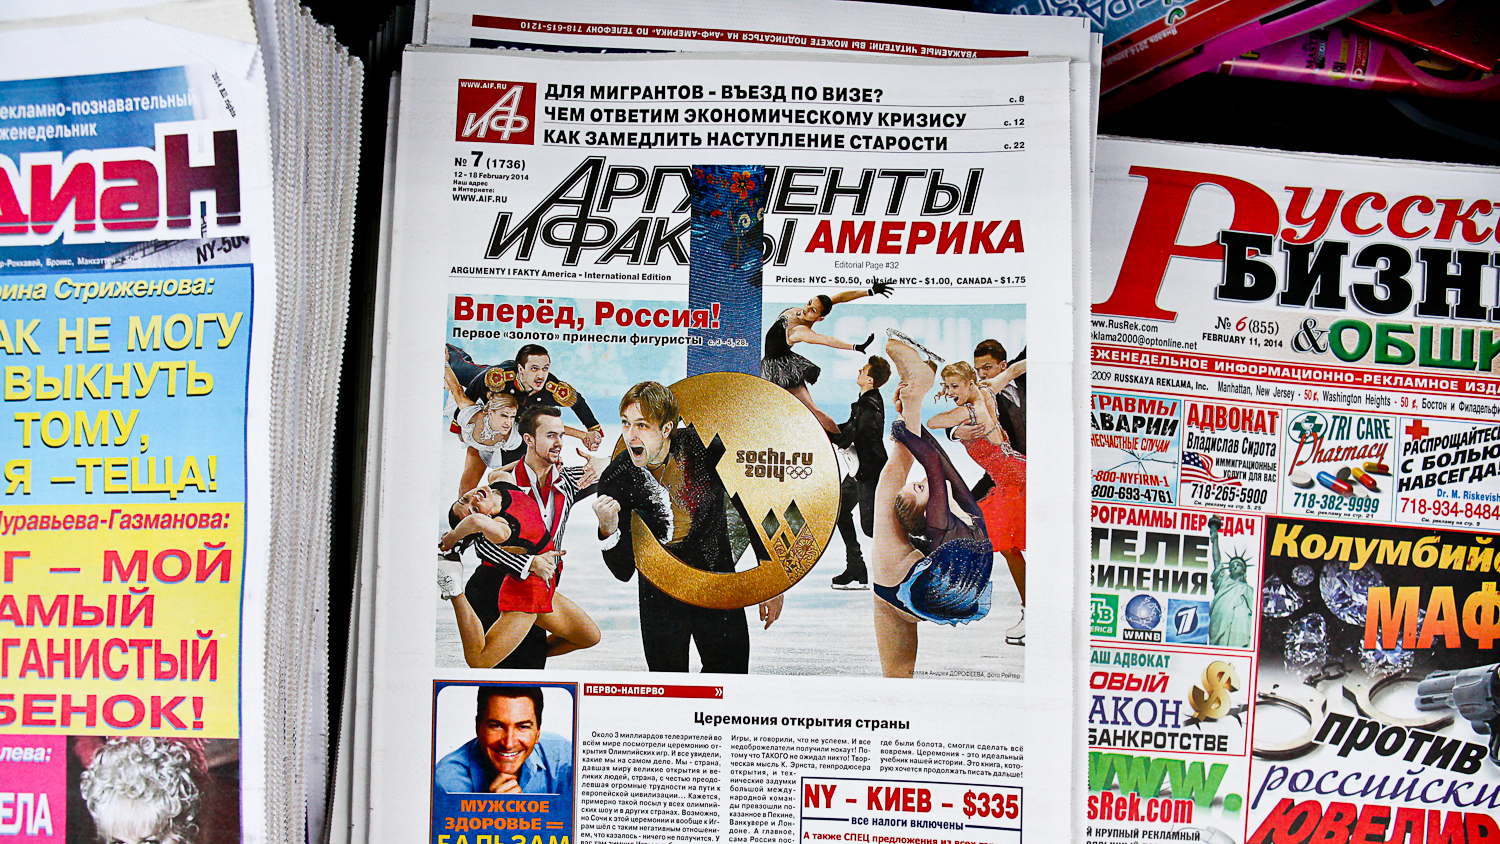 The Russian American Community 13